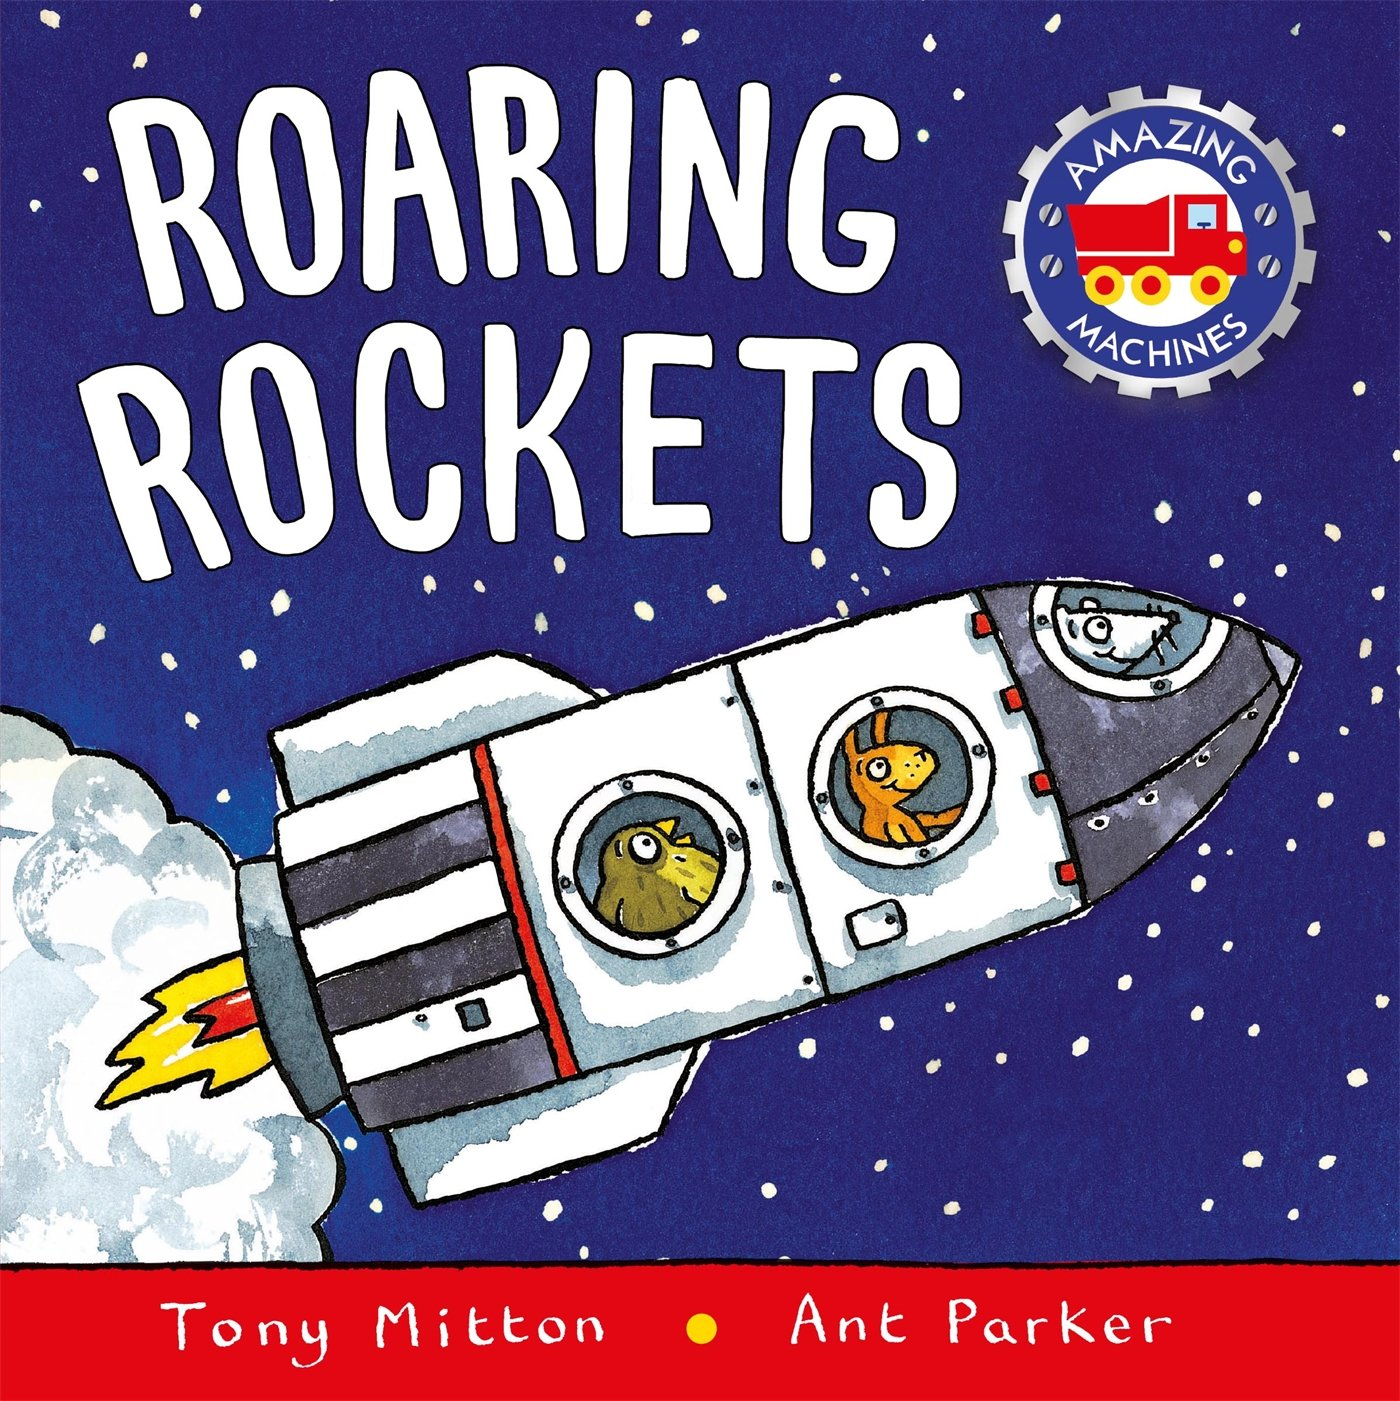 space roaring rockets